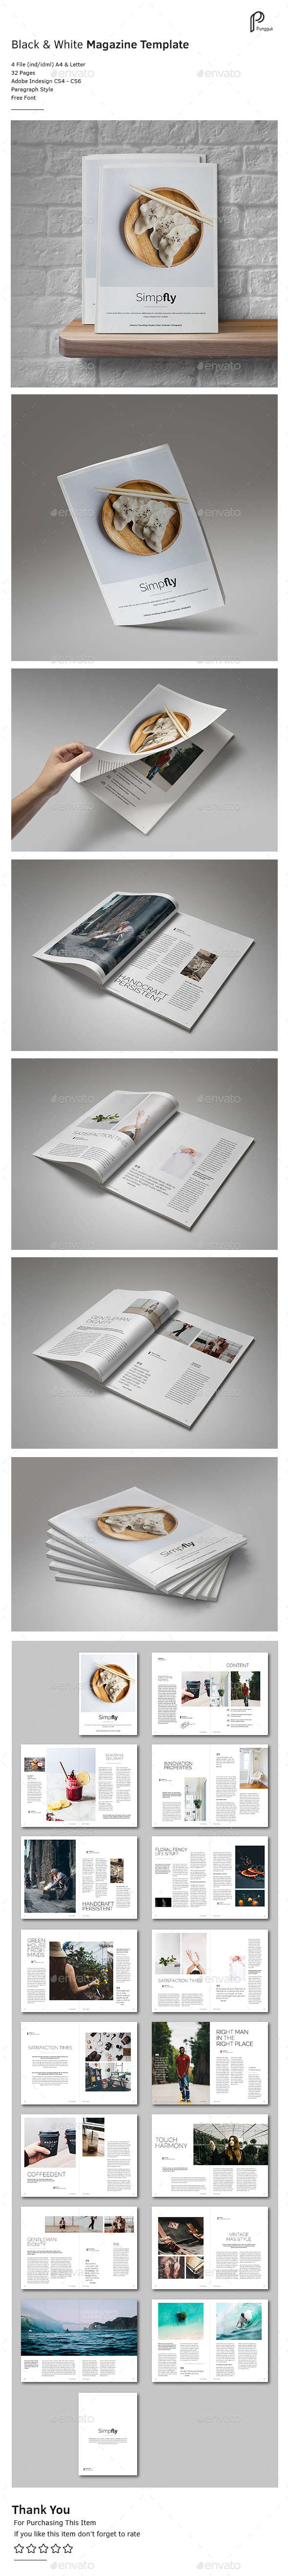 Clean & Simple Magazine Vol.6 - Magazines Print Templates